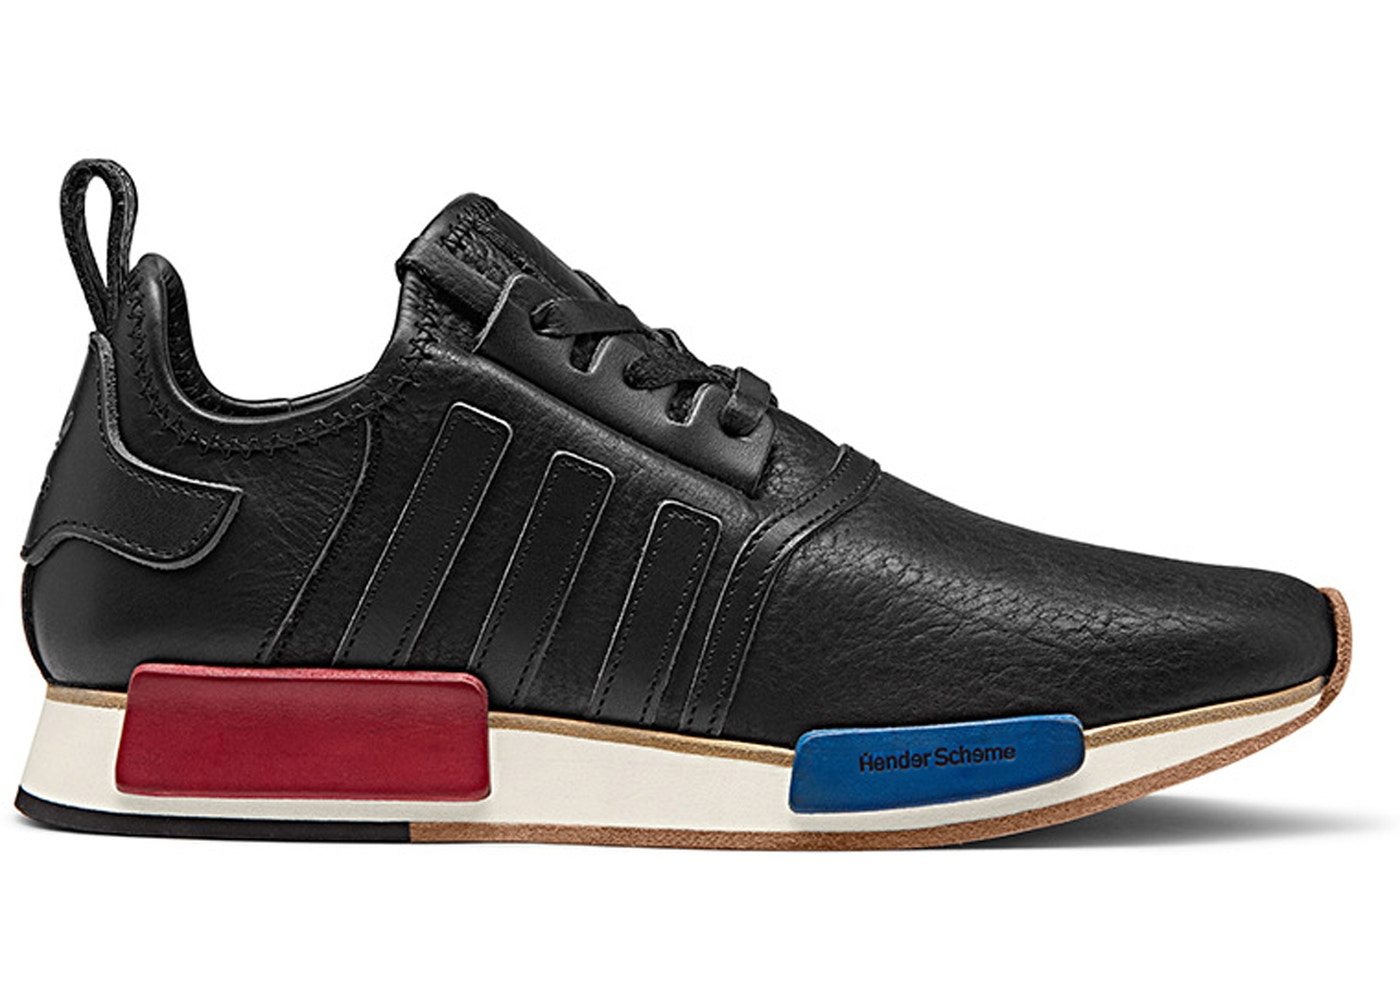 1c33a571c95d6 adidas NMD Shoes - Average Sale Price